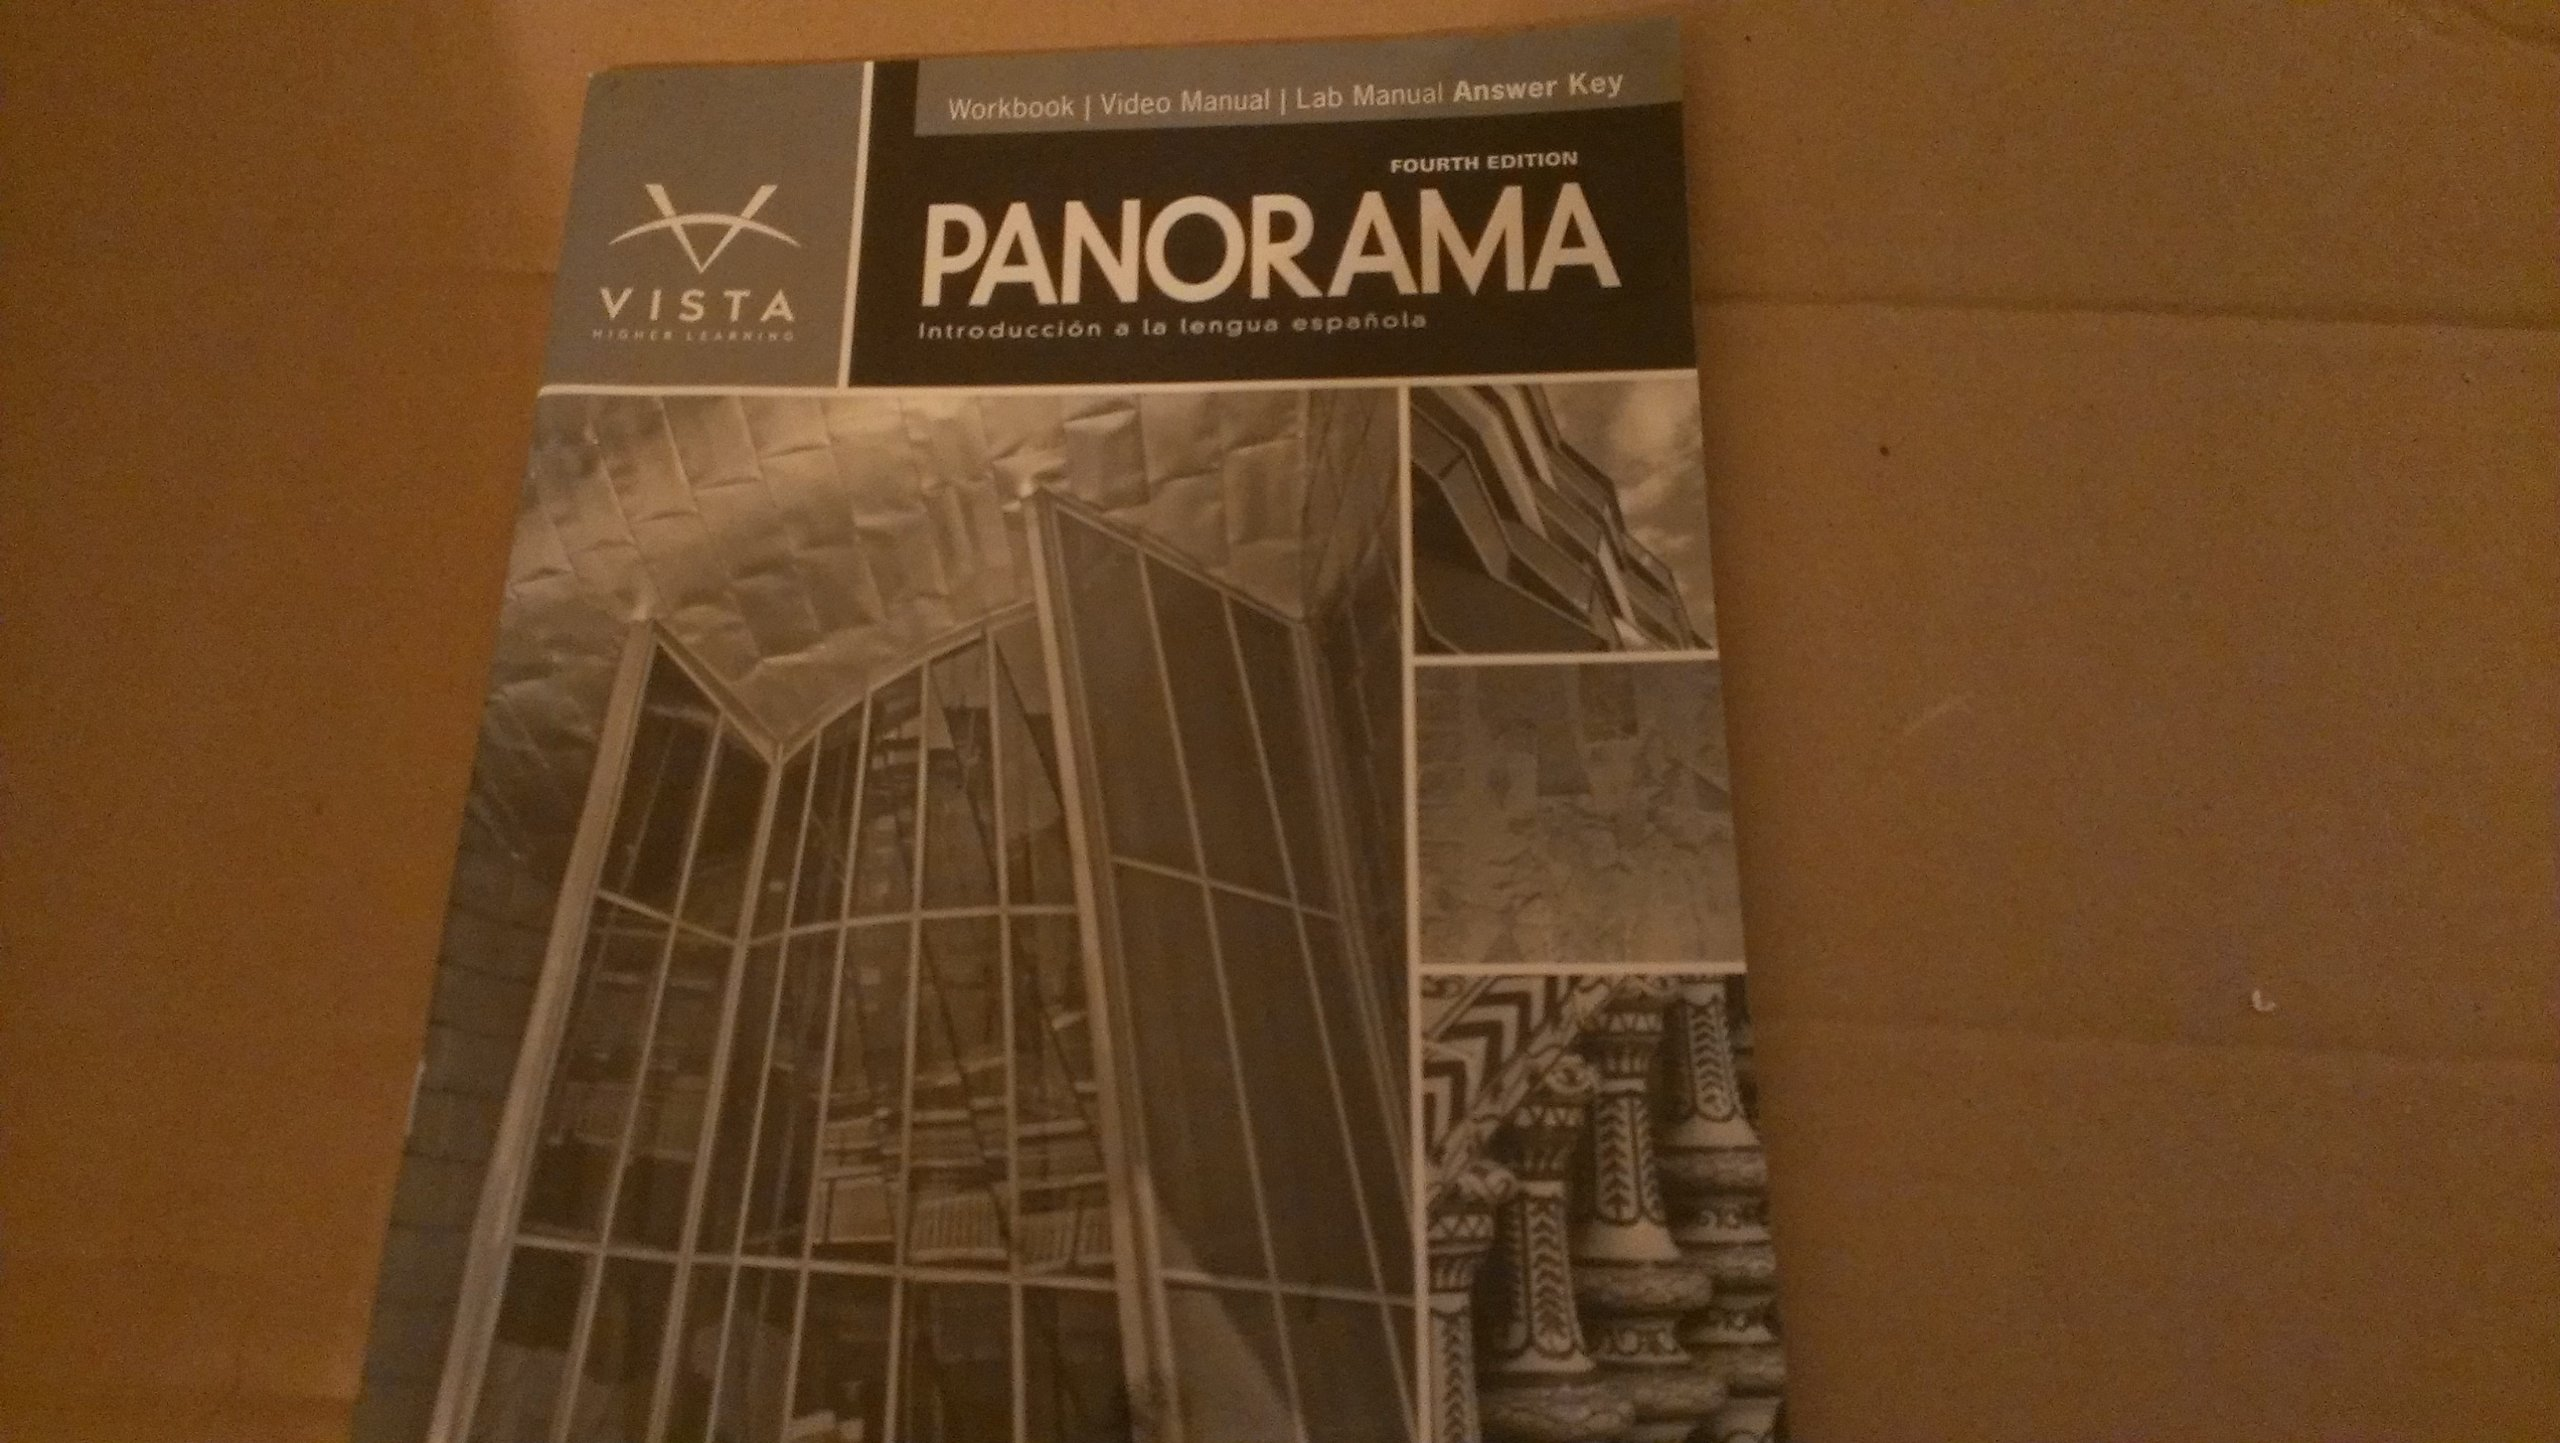 panorama 4th ed workbook video lab manual answer key vhl rh amazon com Ergonomic Slogans Vista Lab Machine